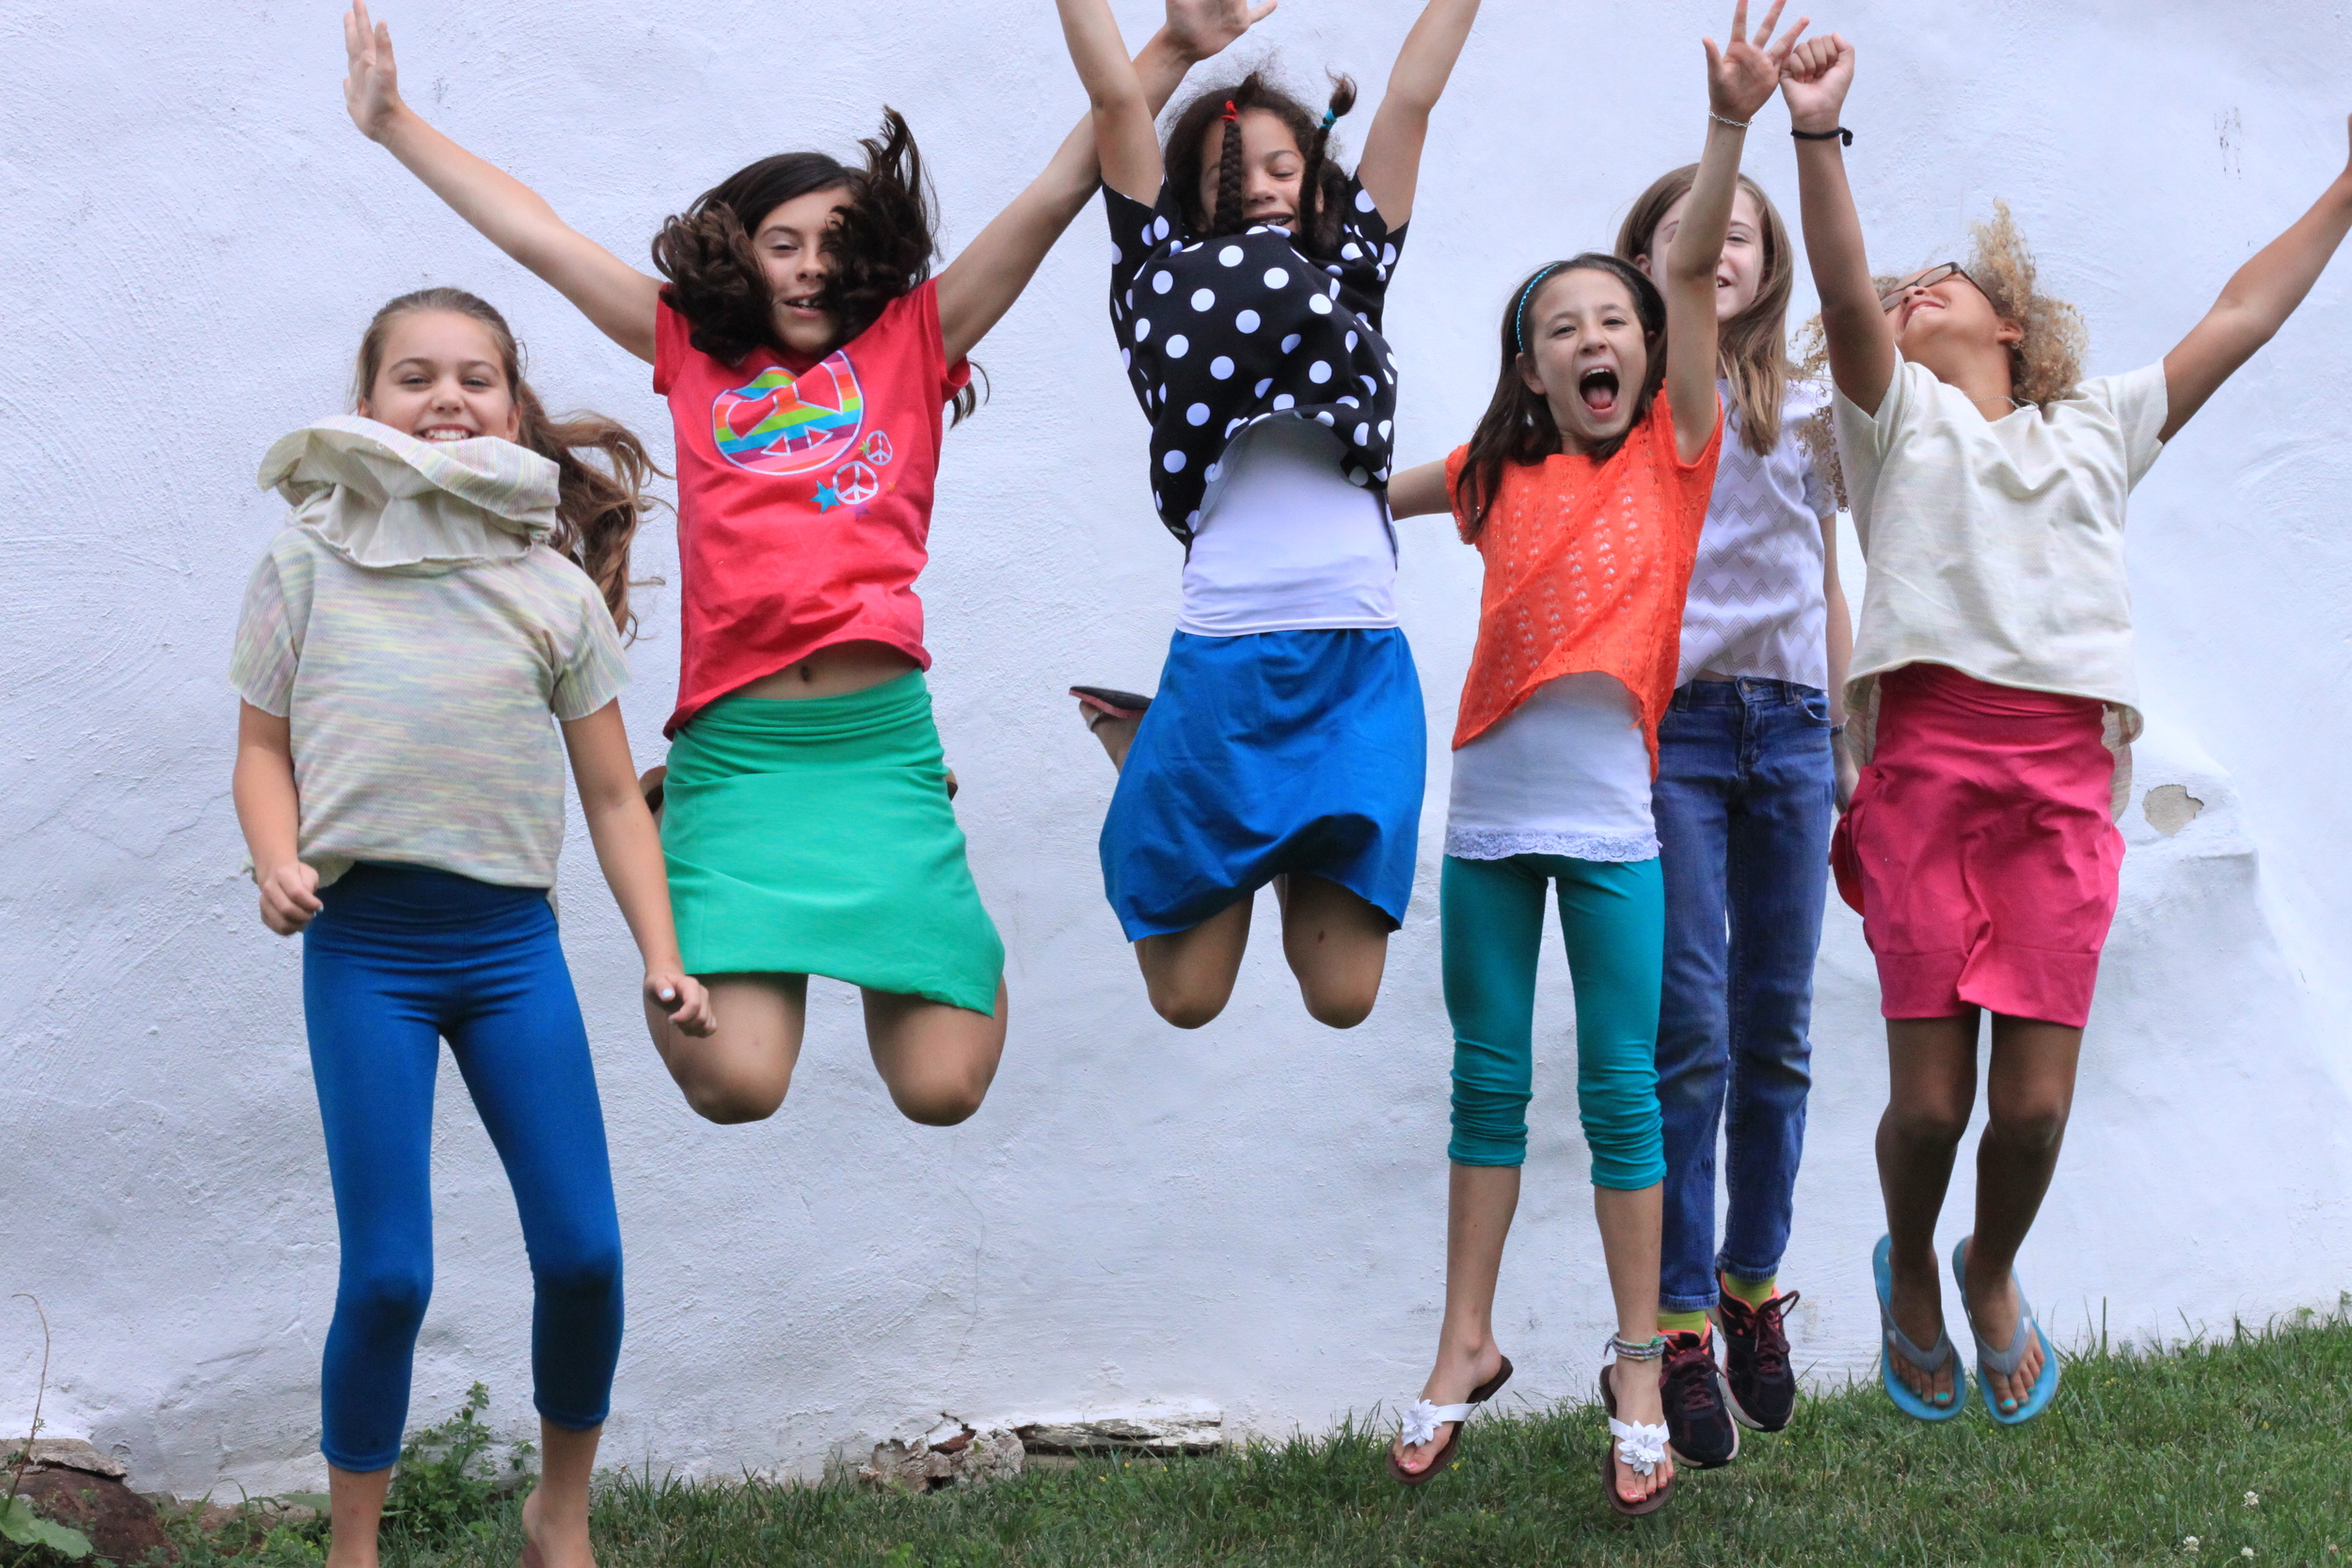 Summer planning for tweens and teens Parenting - GreatSchools